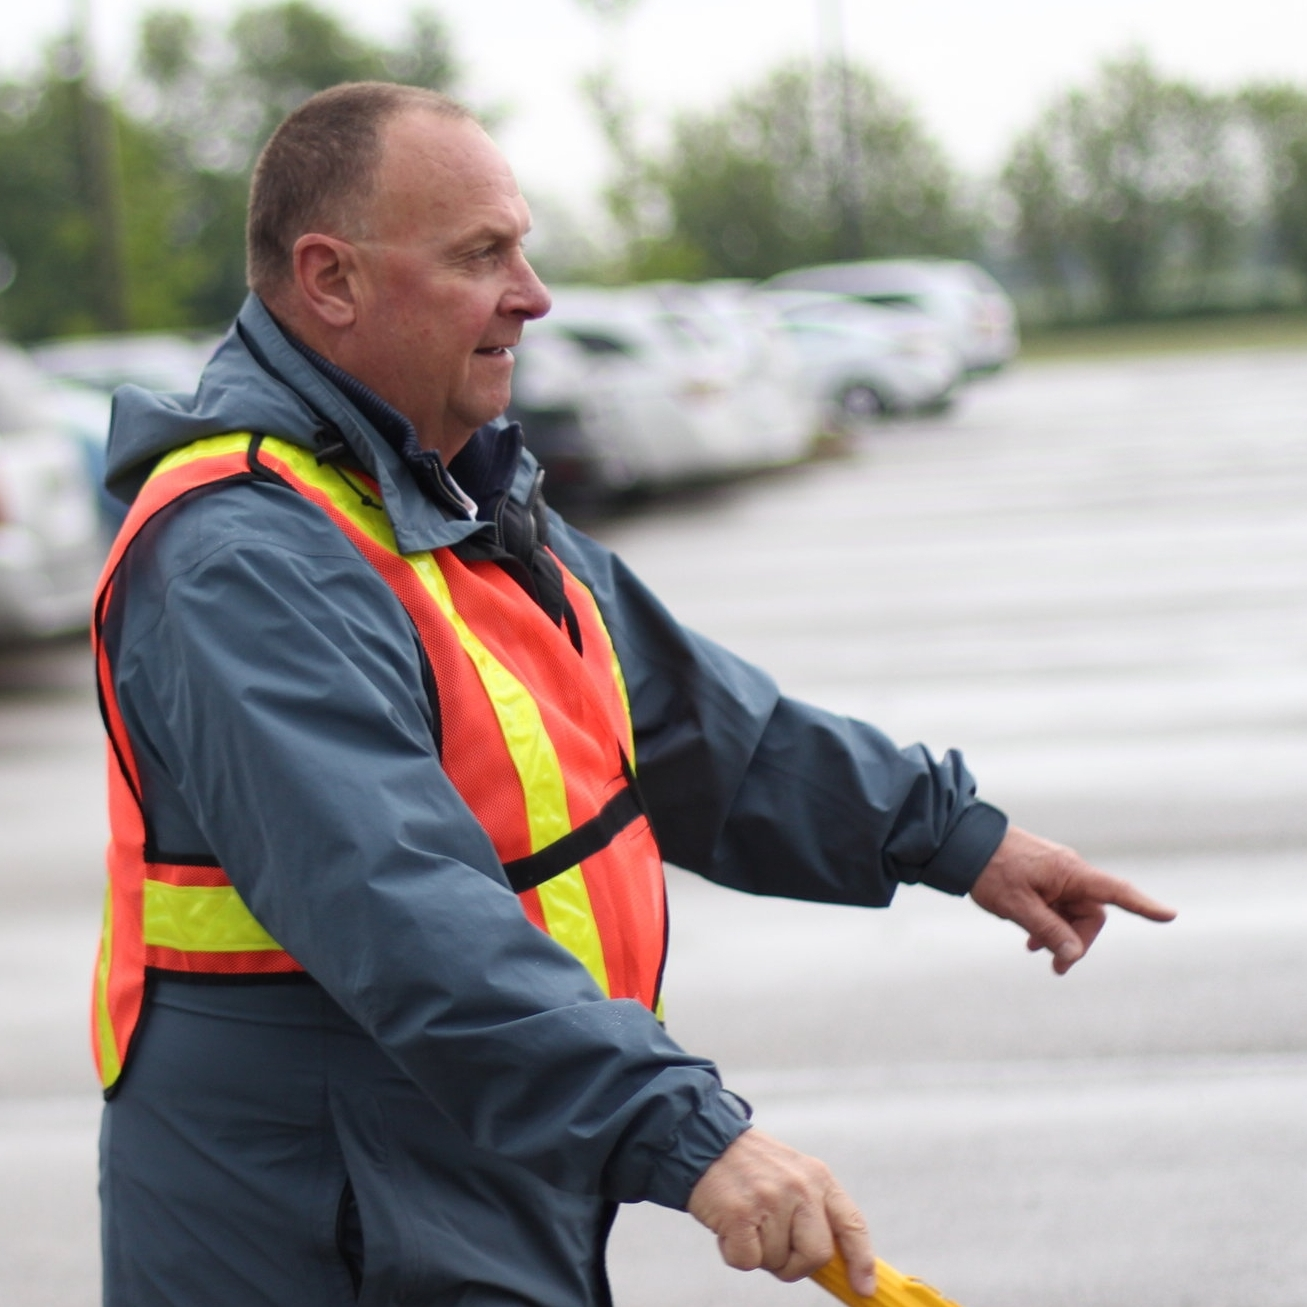 What can I expect on my first visit? - When you pull into our parking lot off St. Charles Street, we make sure the first faces you see have a smile for you! You'll be greeted by volunteers in bright orange vests who will direct you to the best available spot.